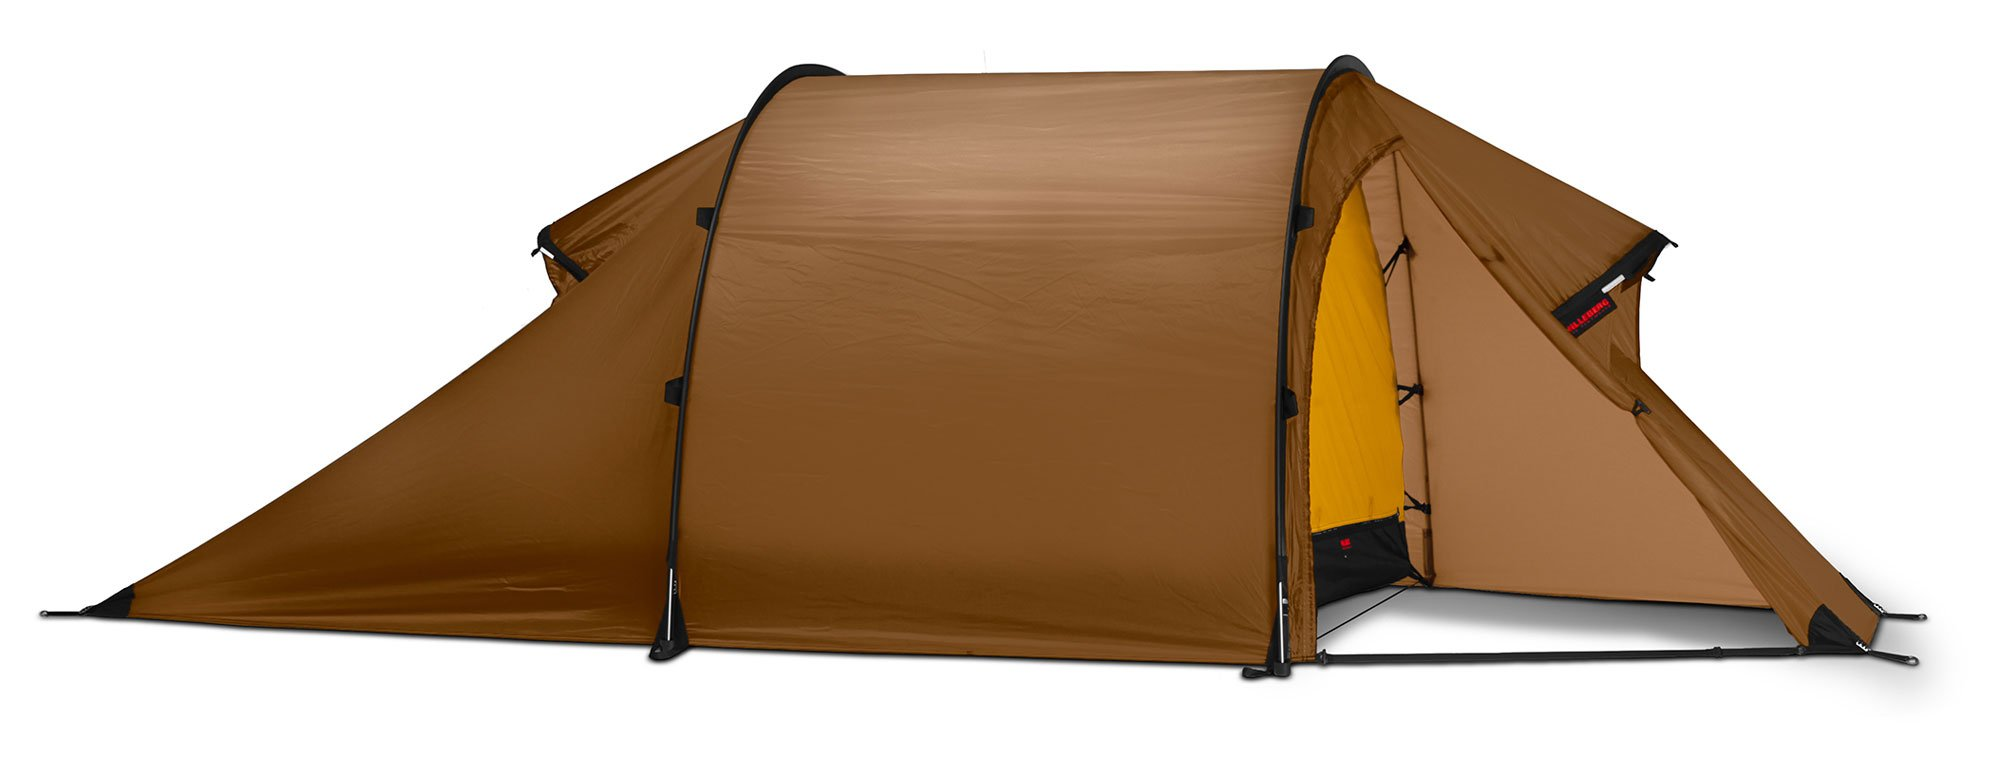 Hilleberg Nammatj 3-Person Mountaineering Tent, Sand fly by Hilleberg (Image #1)